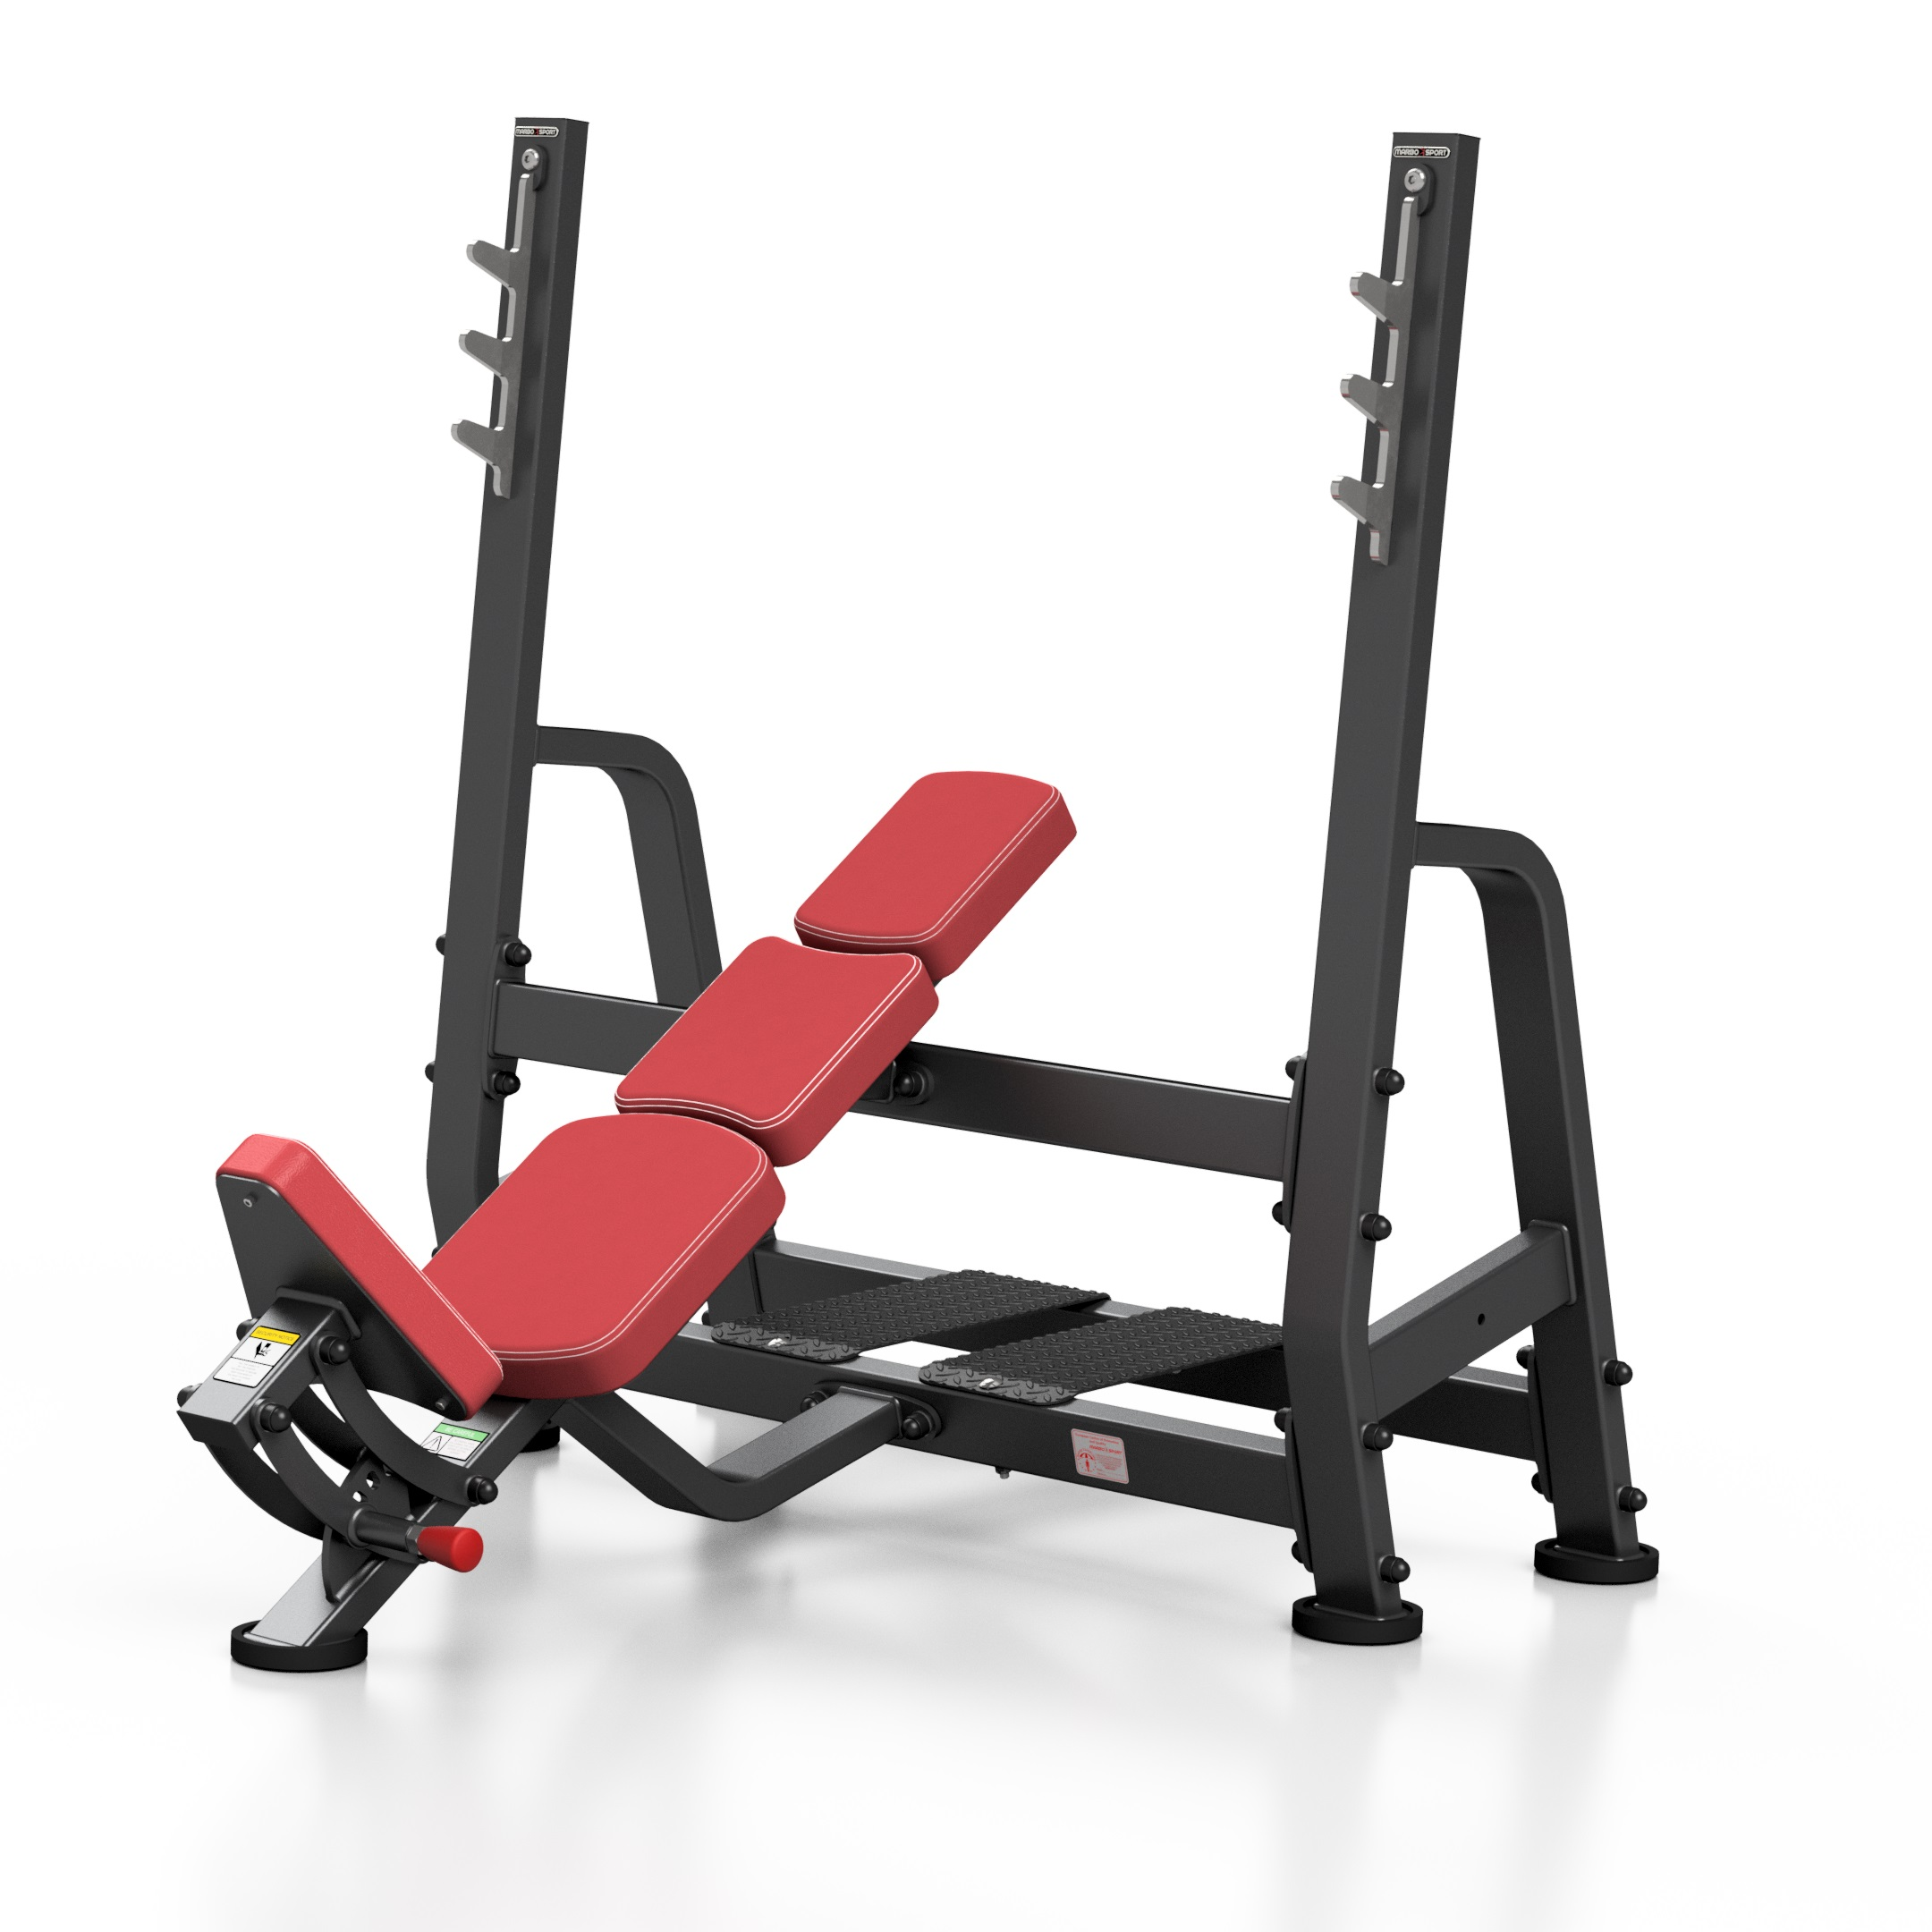 com incline workout bench slant walmart product s weight gym xr gold adjustable bcaf reviews